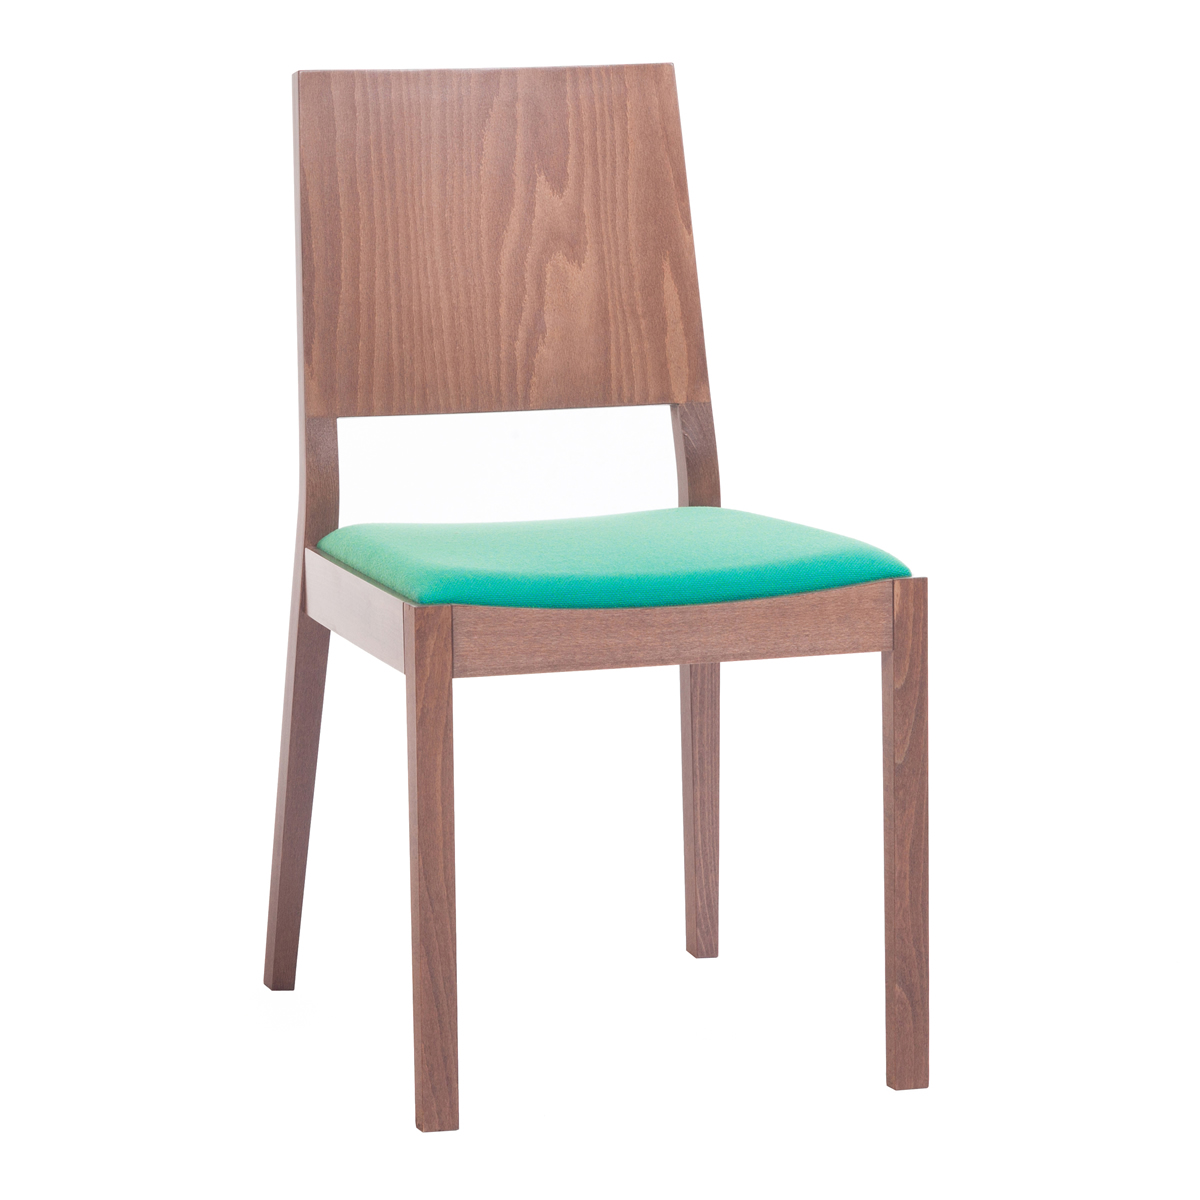 Chair Lyon 514 TON as hancrafted for generations